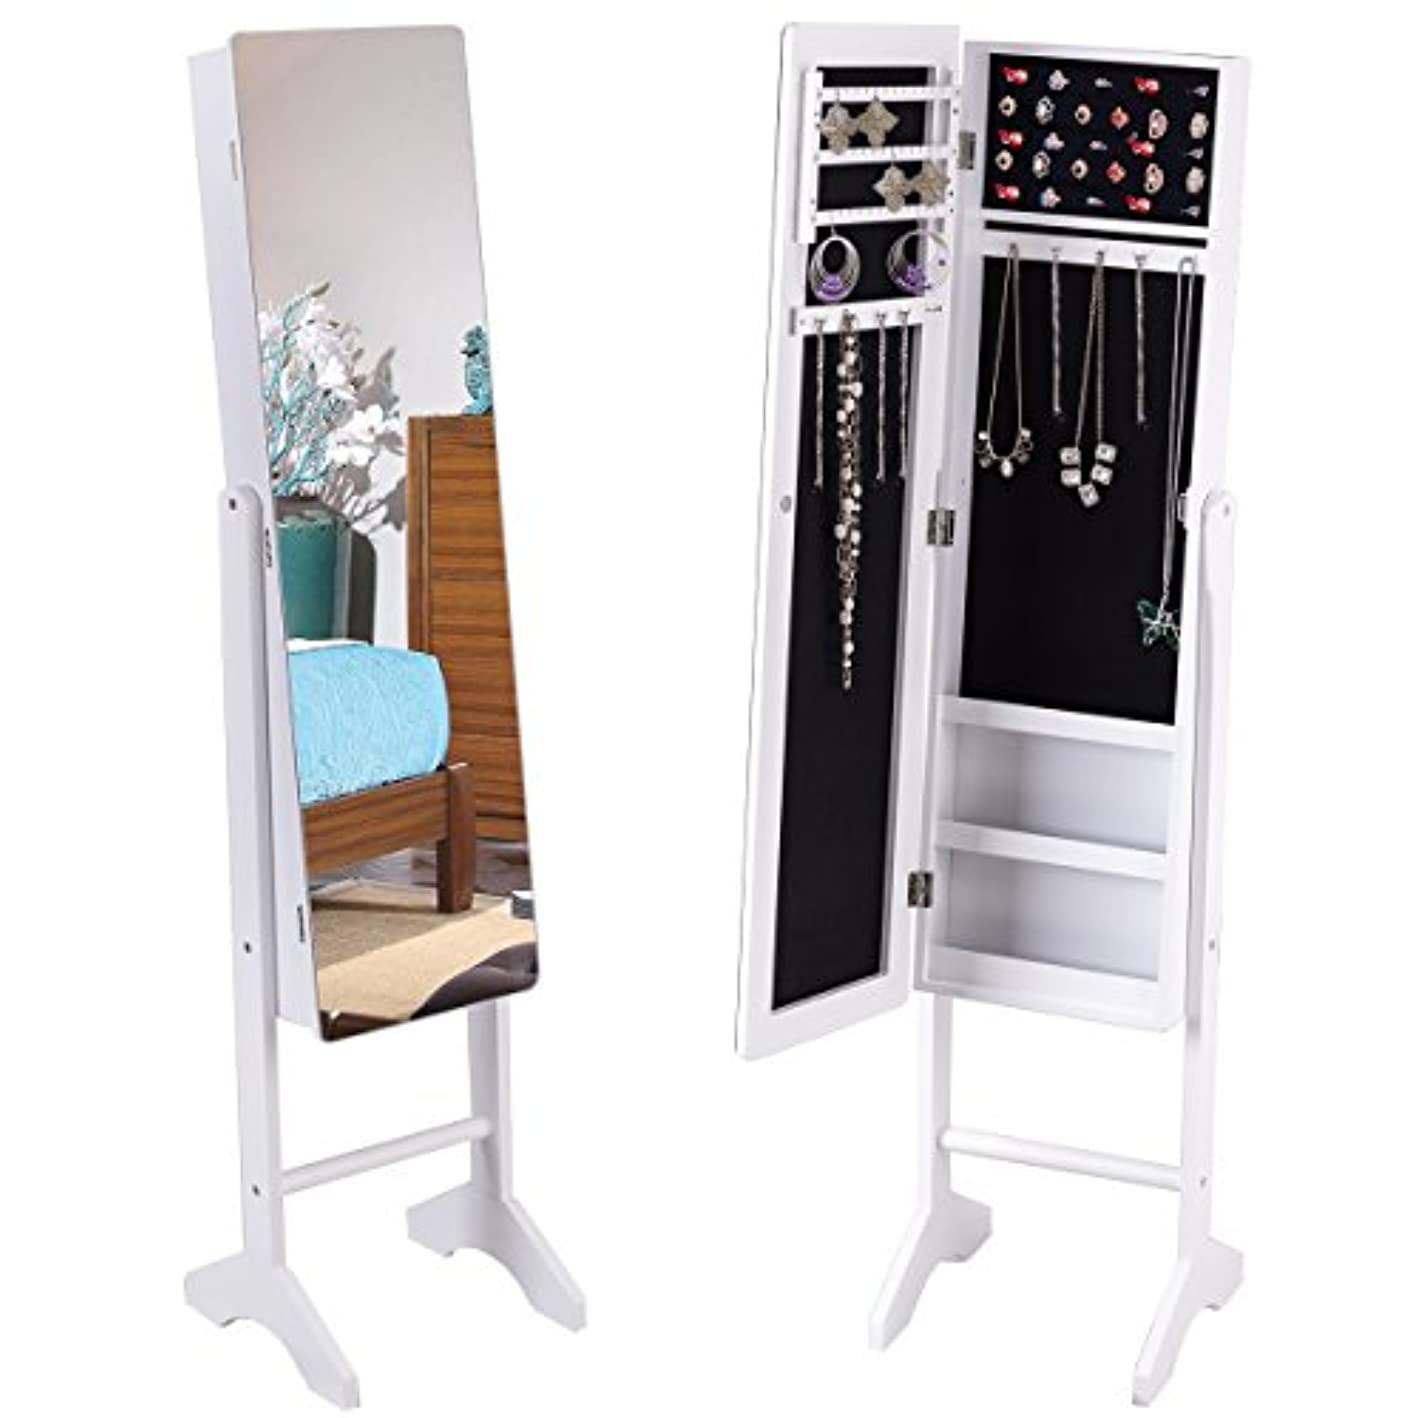 Giantex Mirrored Jewelry Cabinet Armoire Free Standing Lockable Storage Organizer Home Bedroom Large 50 Ring Slots 36 Earrings 10 Necklace Hook Frameless Wide Full Length Mirror Jewelry Armoires